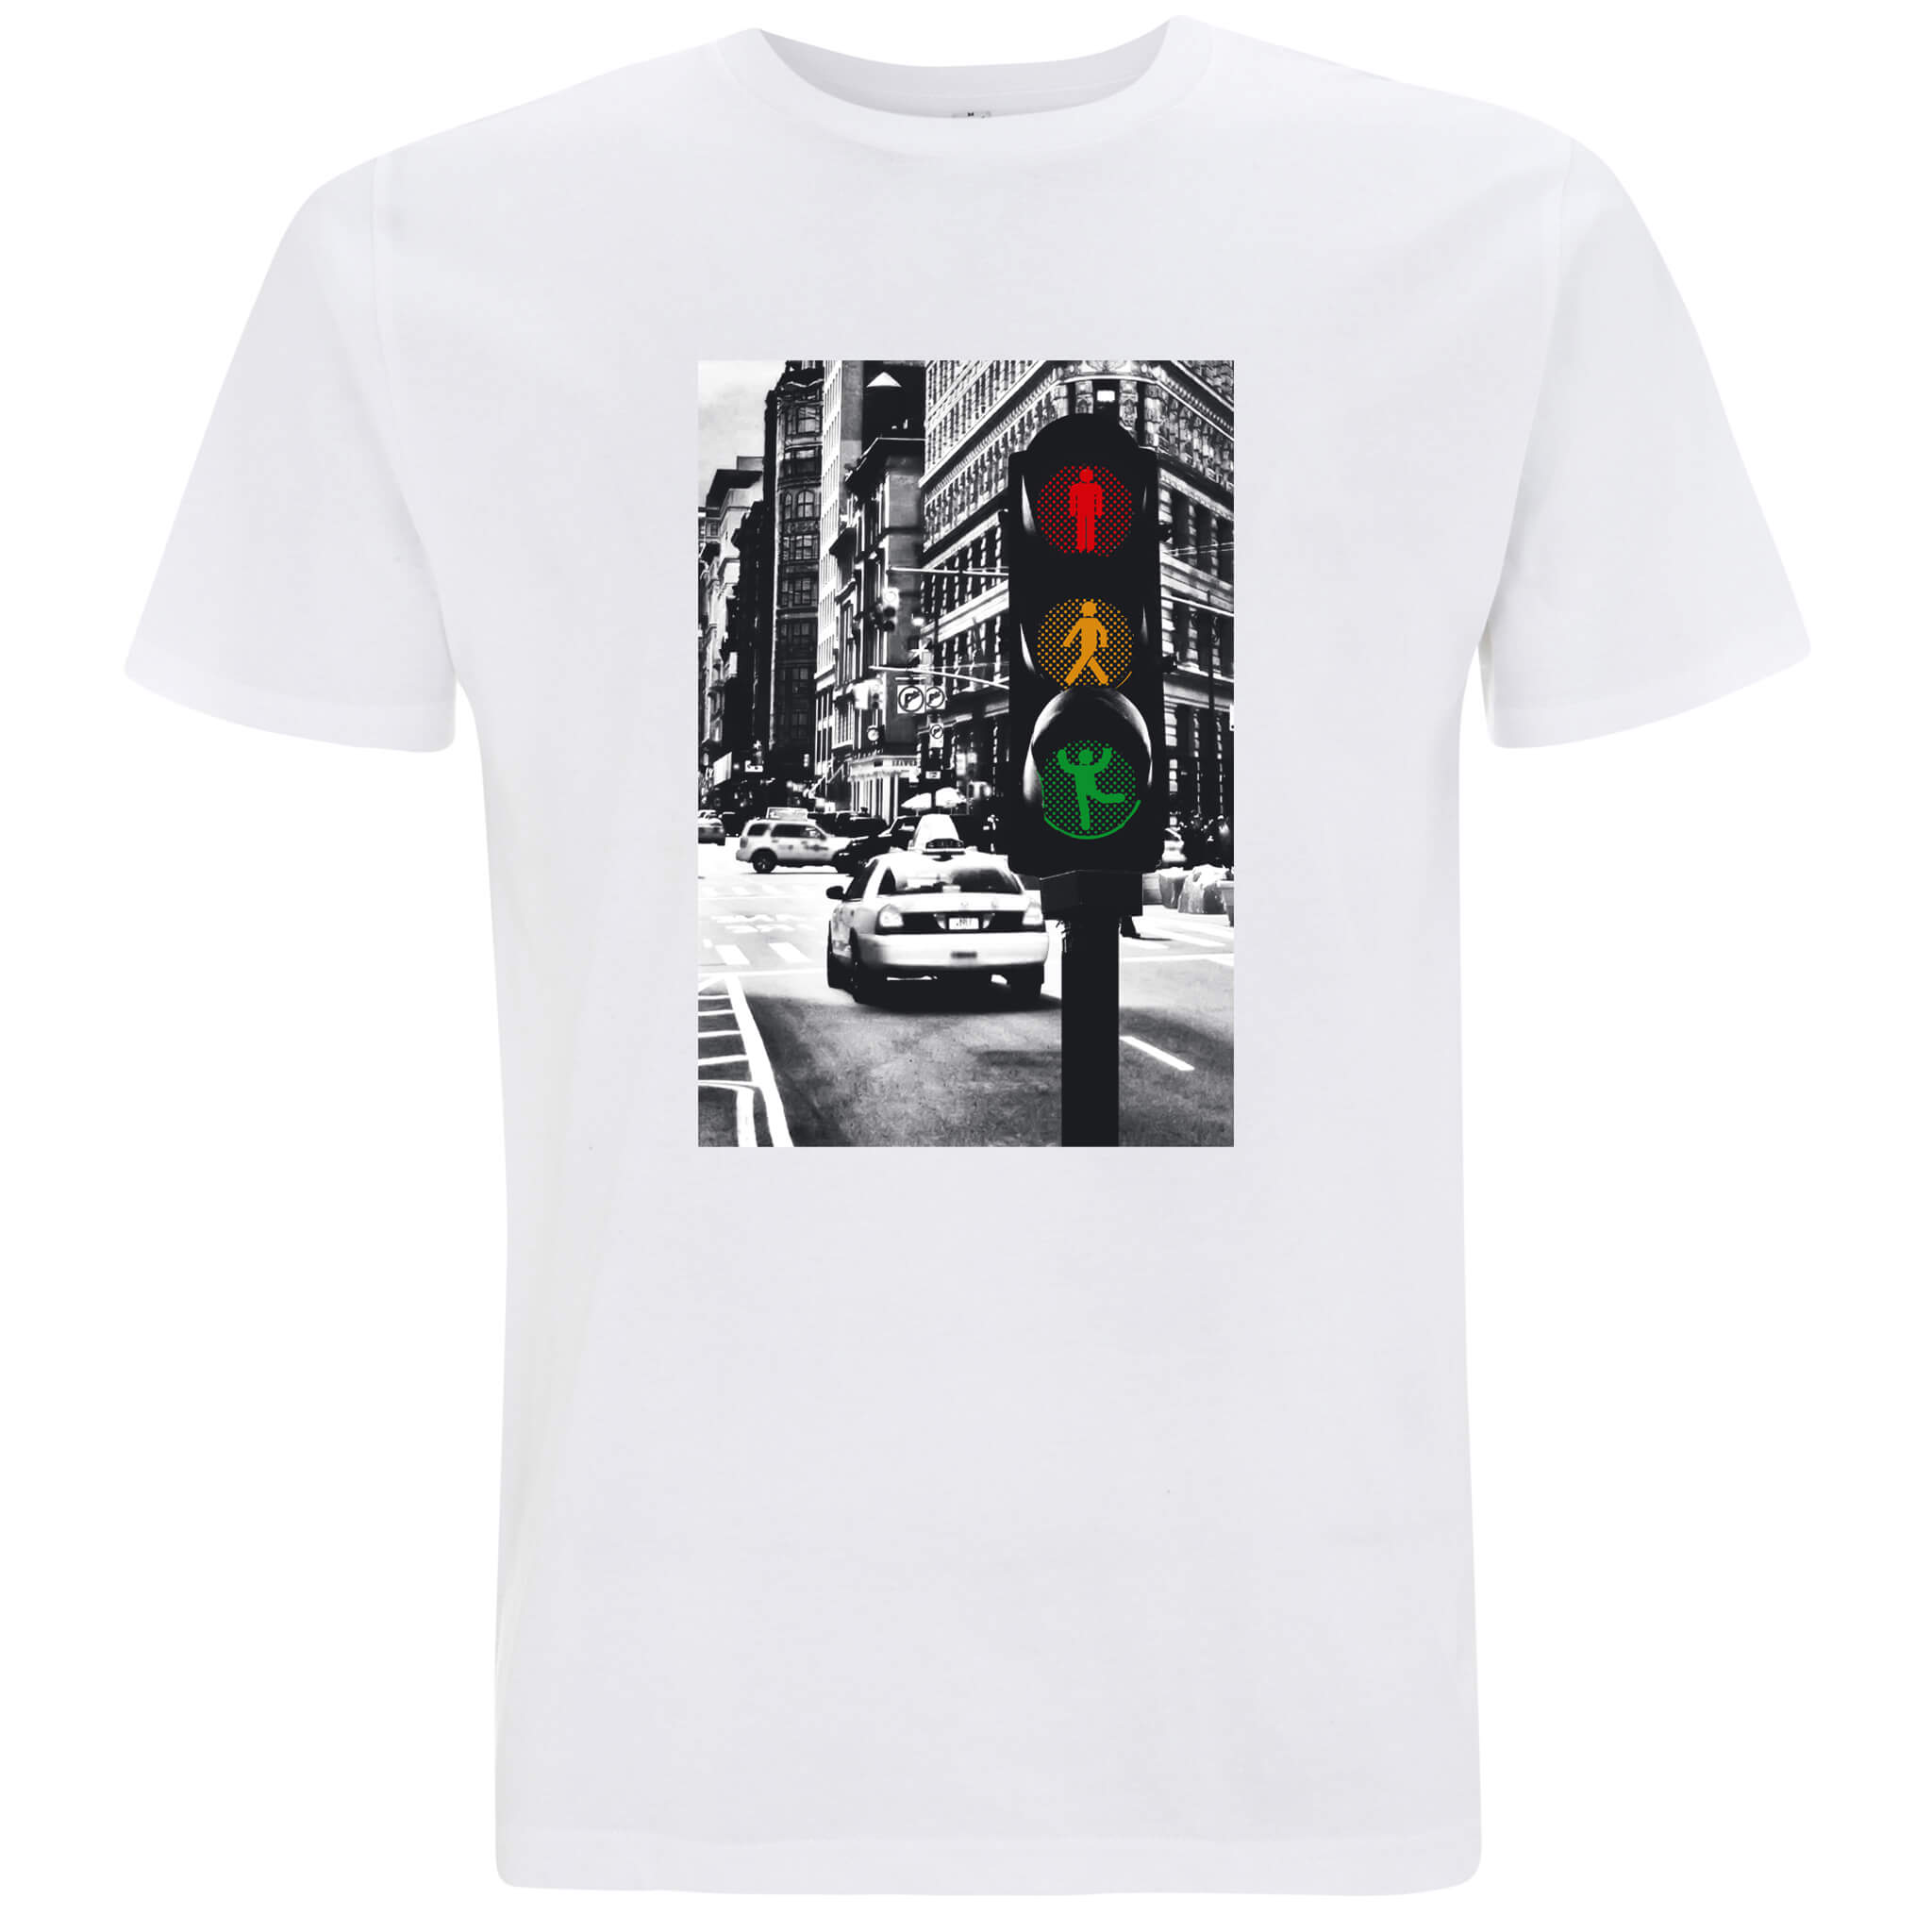 Semaforo - T-shirt Uomo - T-Shirt by Fol The Brand